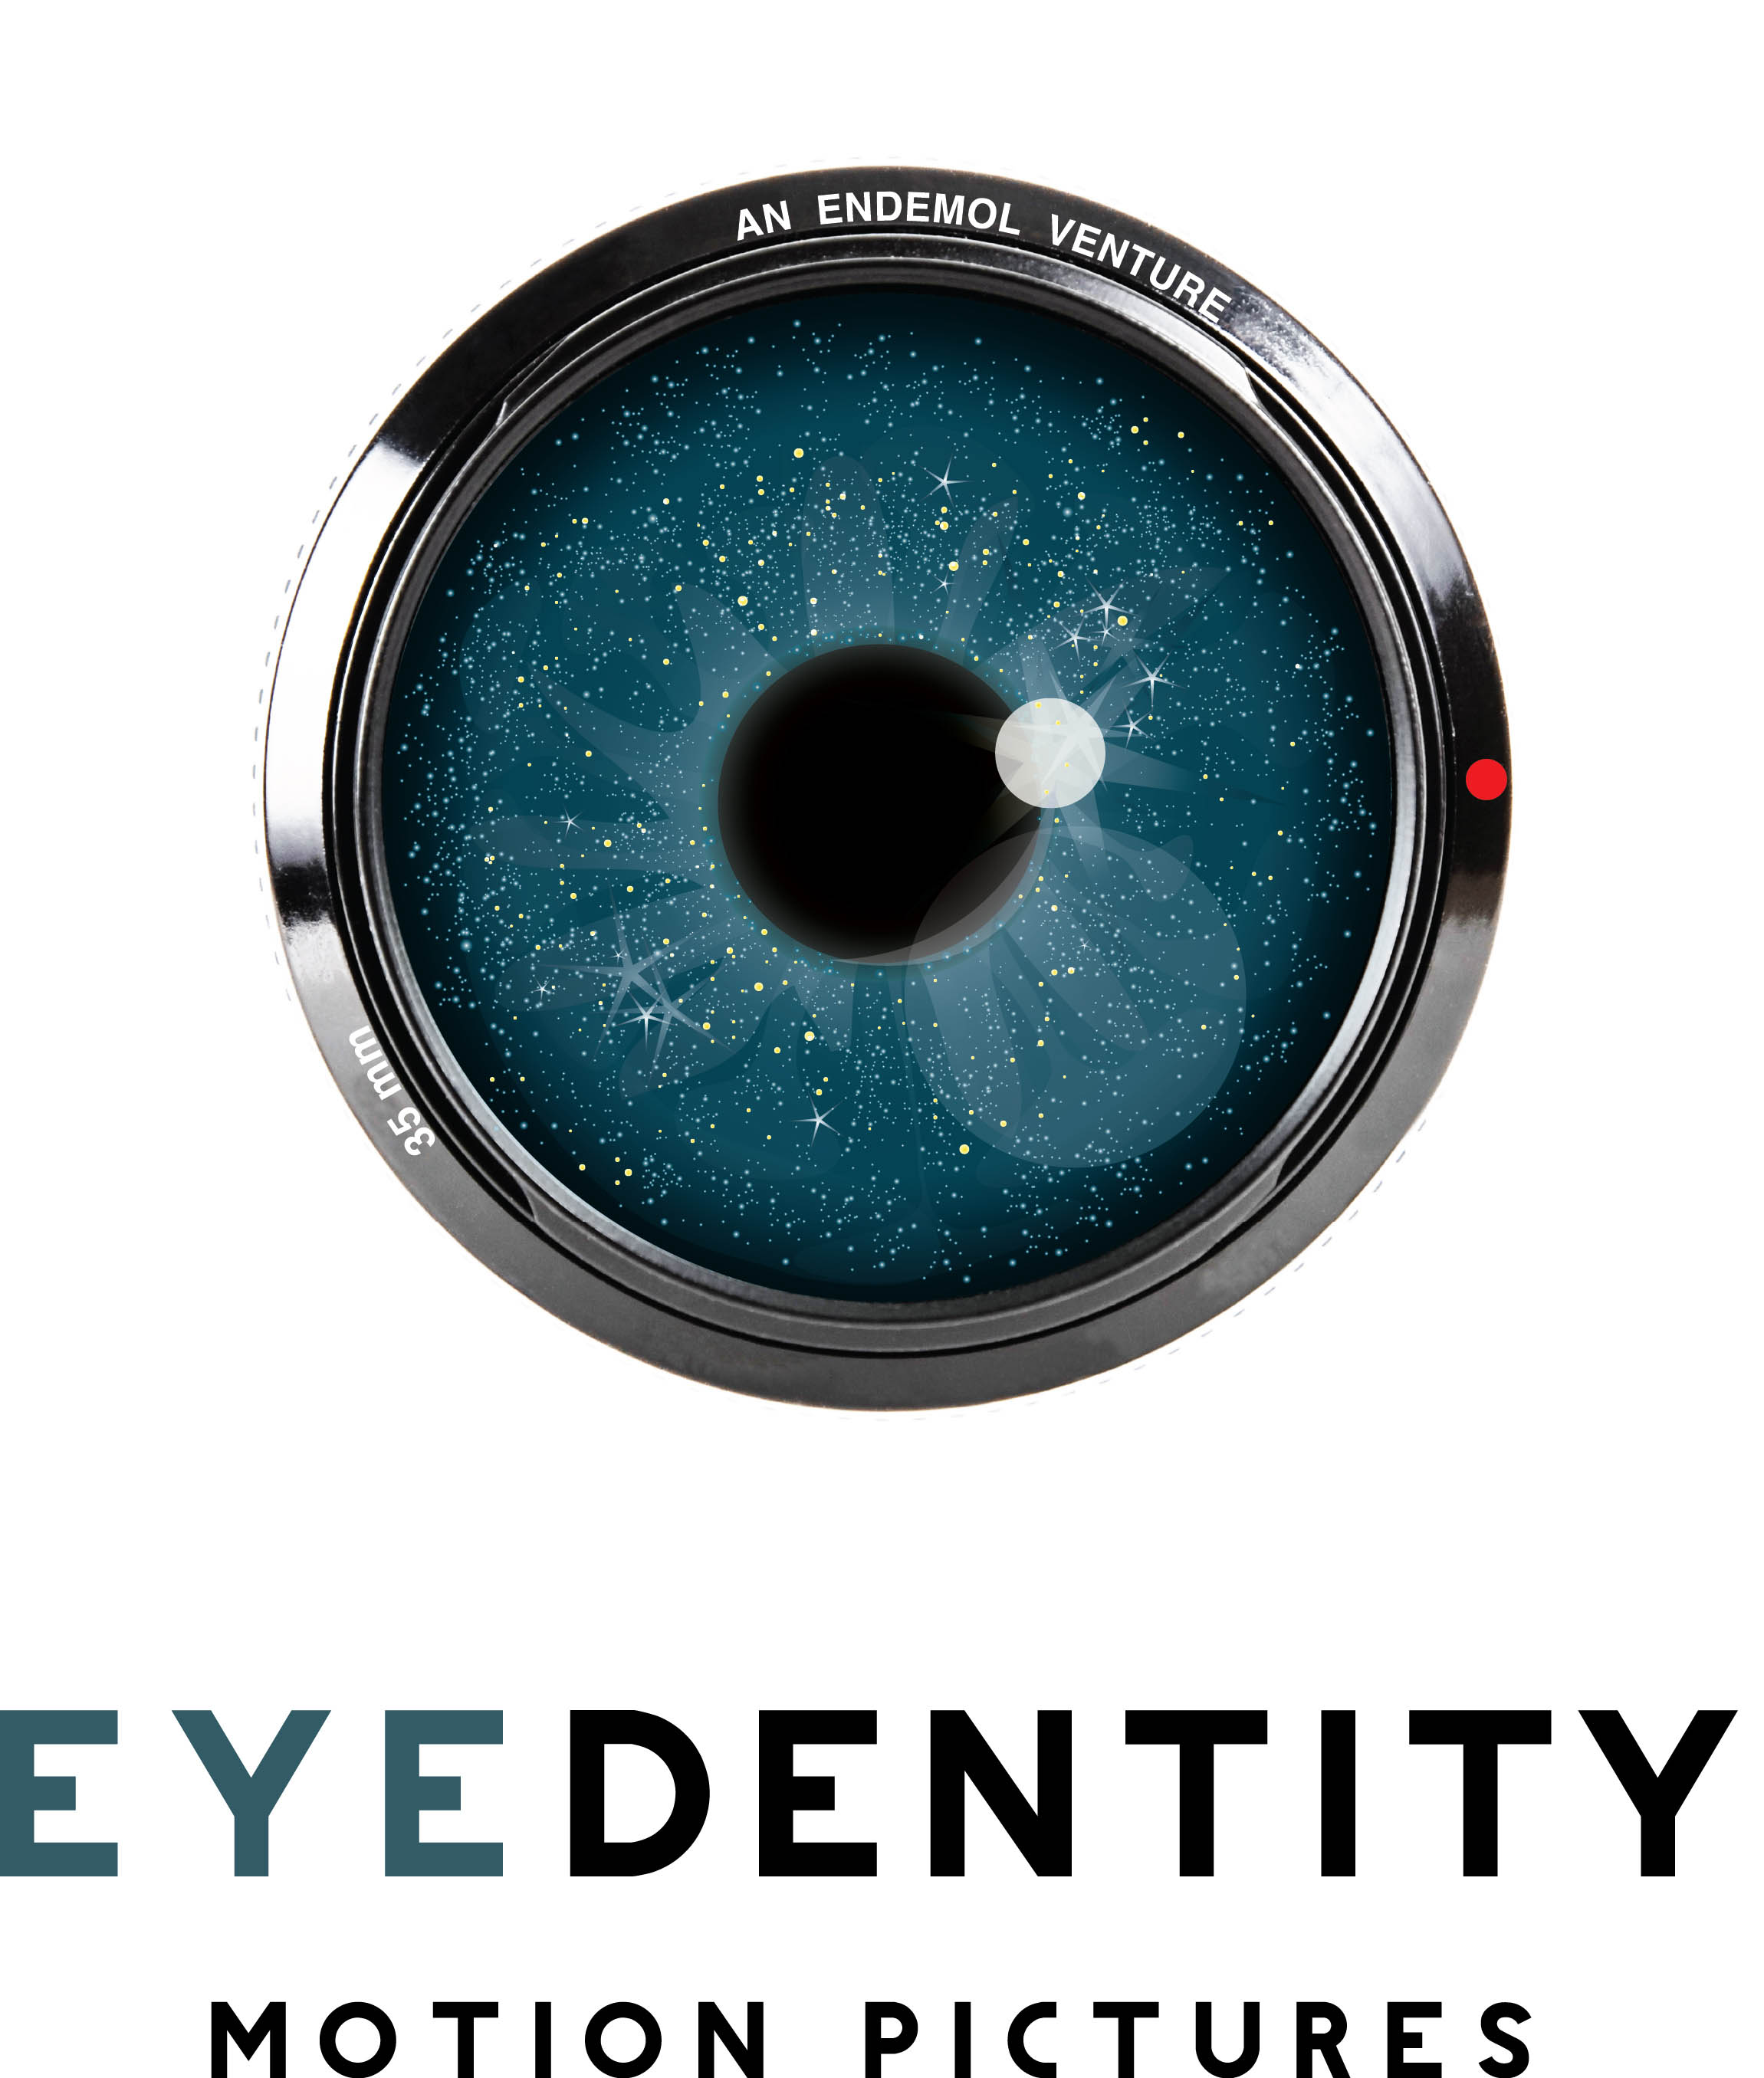 Eyedentity Motion Pictures